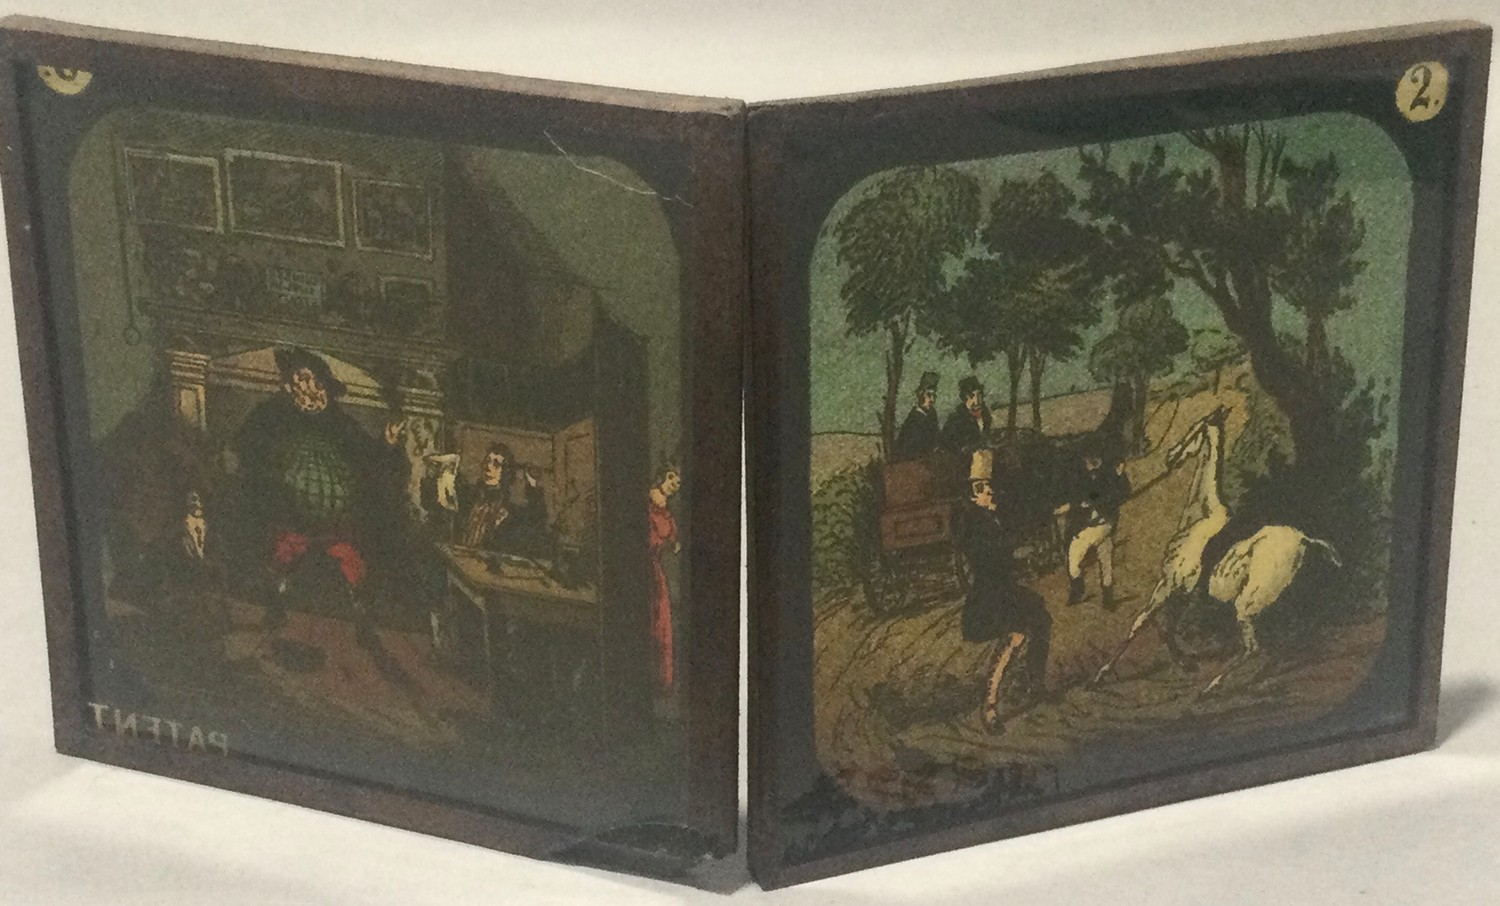 Boxed magic lantern and assortement of slides - Image 5 of 7